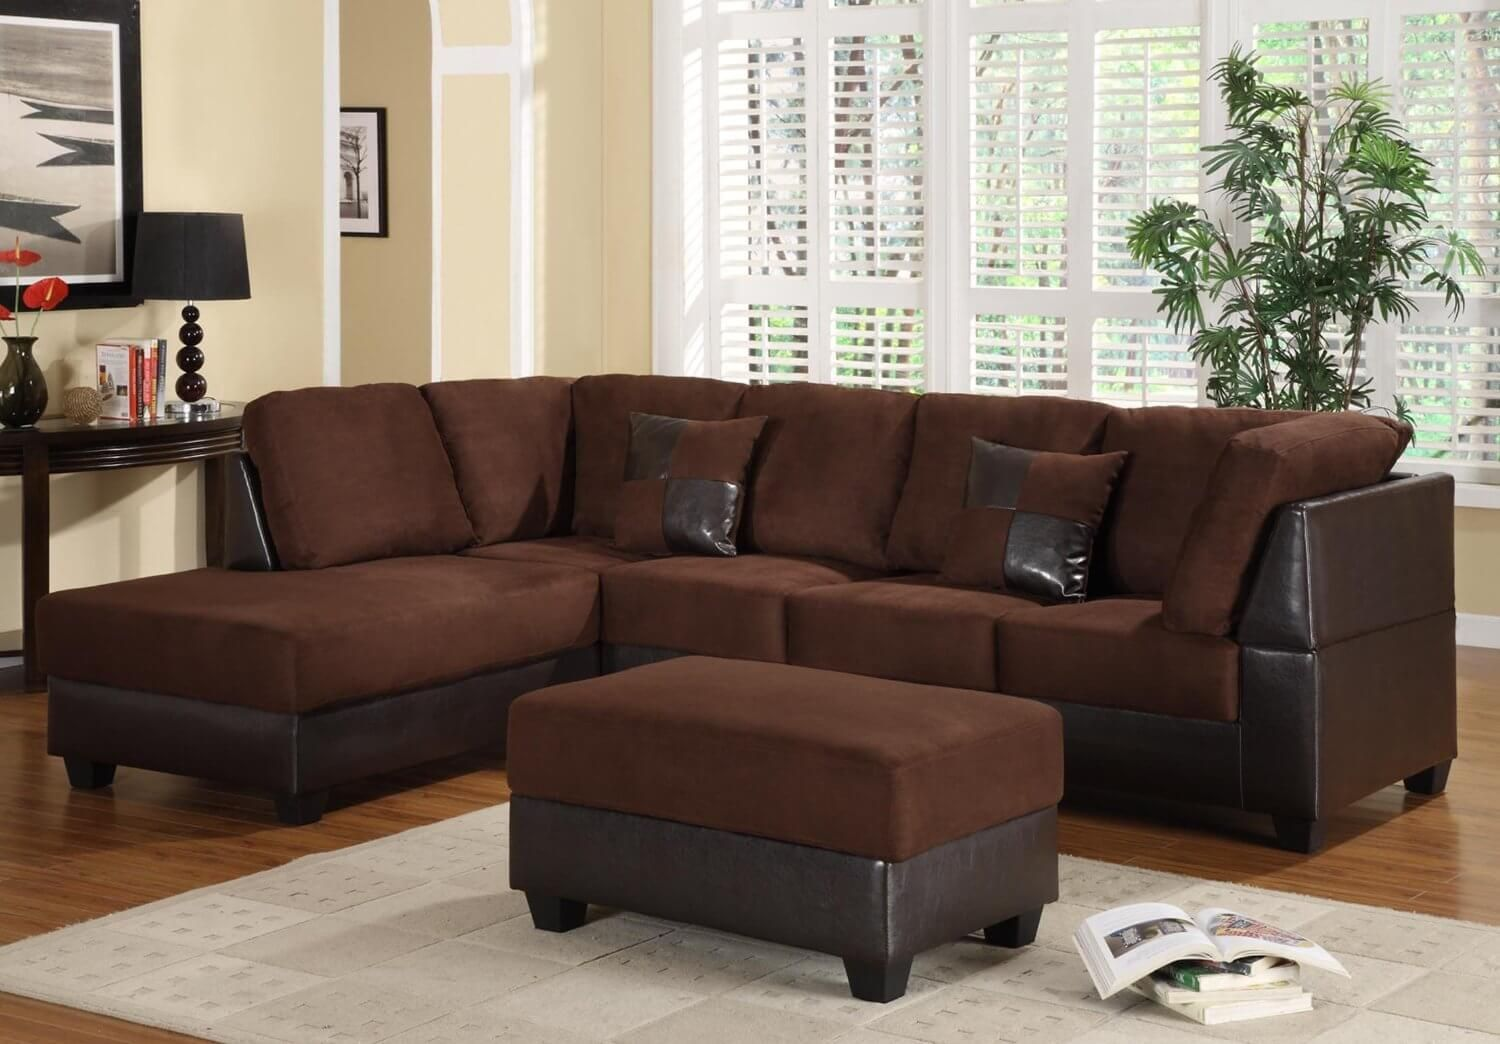 Cheap Living Room Sets Under 200 Cheap Living Room Furniture